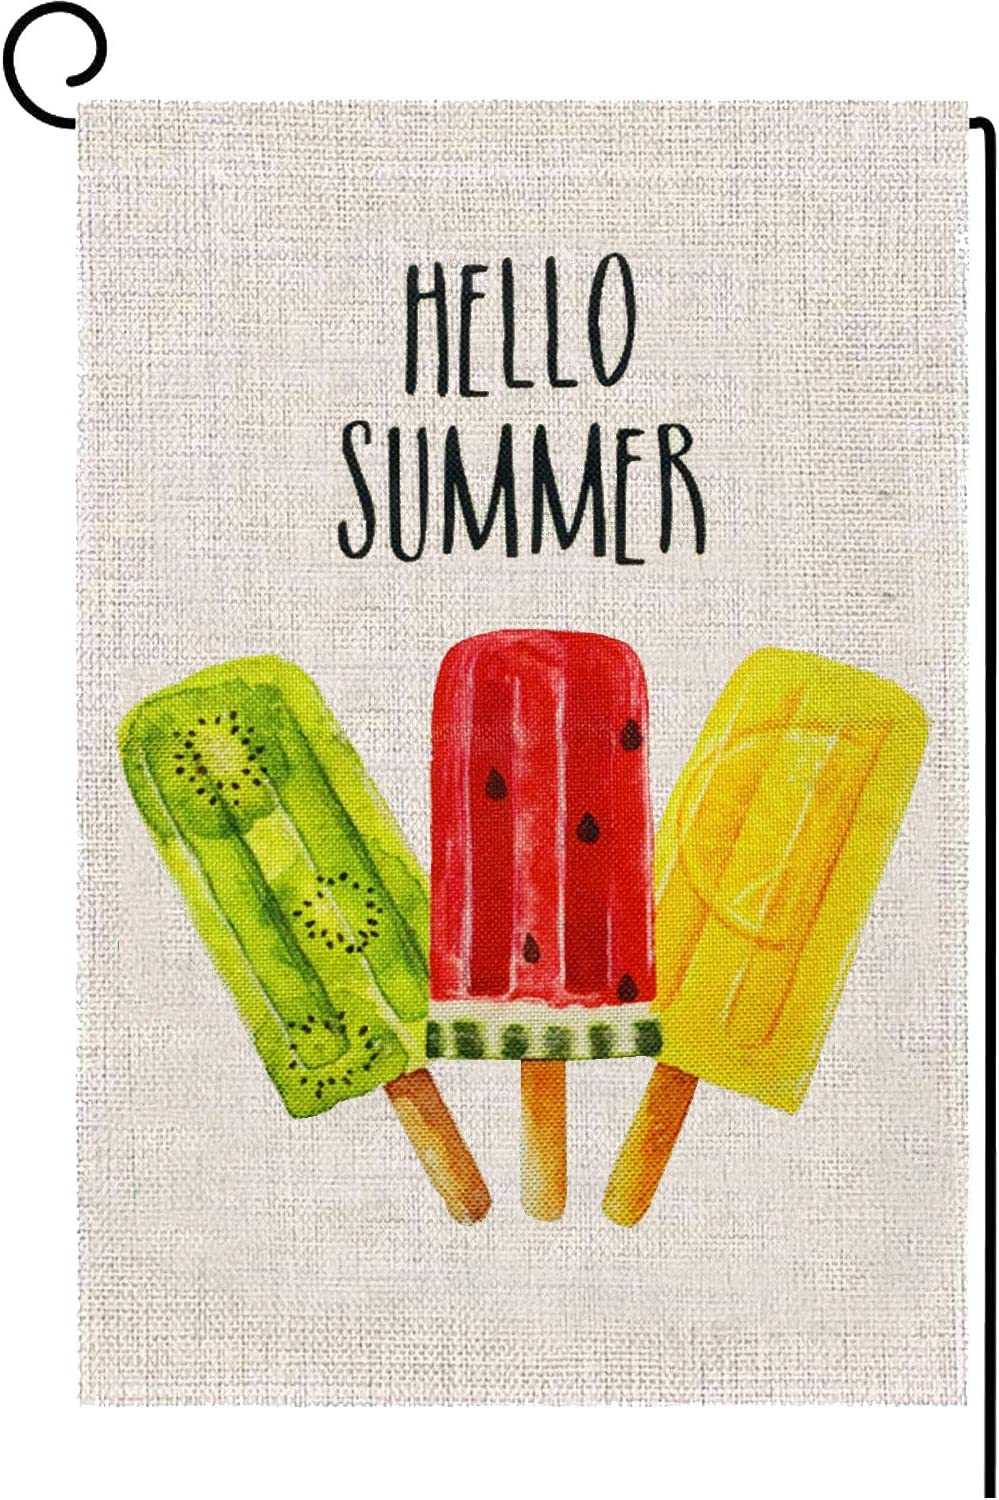 Alpurple Summer Popsicles Garden Flag-12.5 x 18 Inch Double-Sided Printed Summer Ice Cream Yard Burlap Banner for Seasonal Rustic Home & Outdoor Decoration